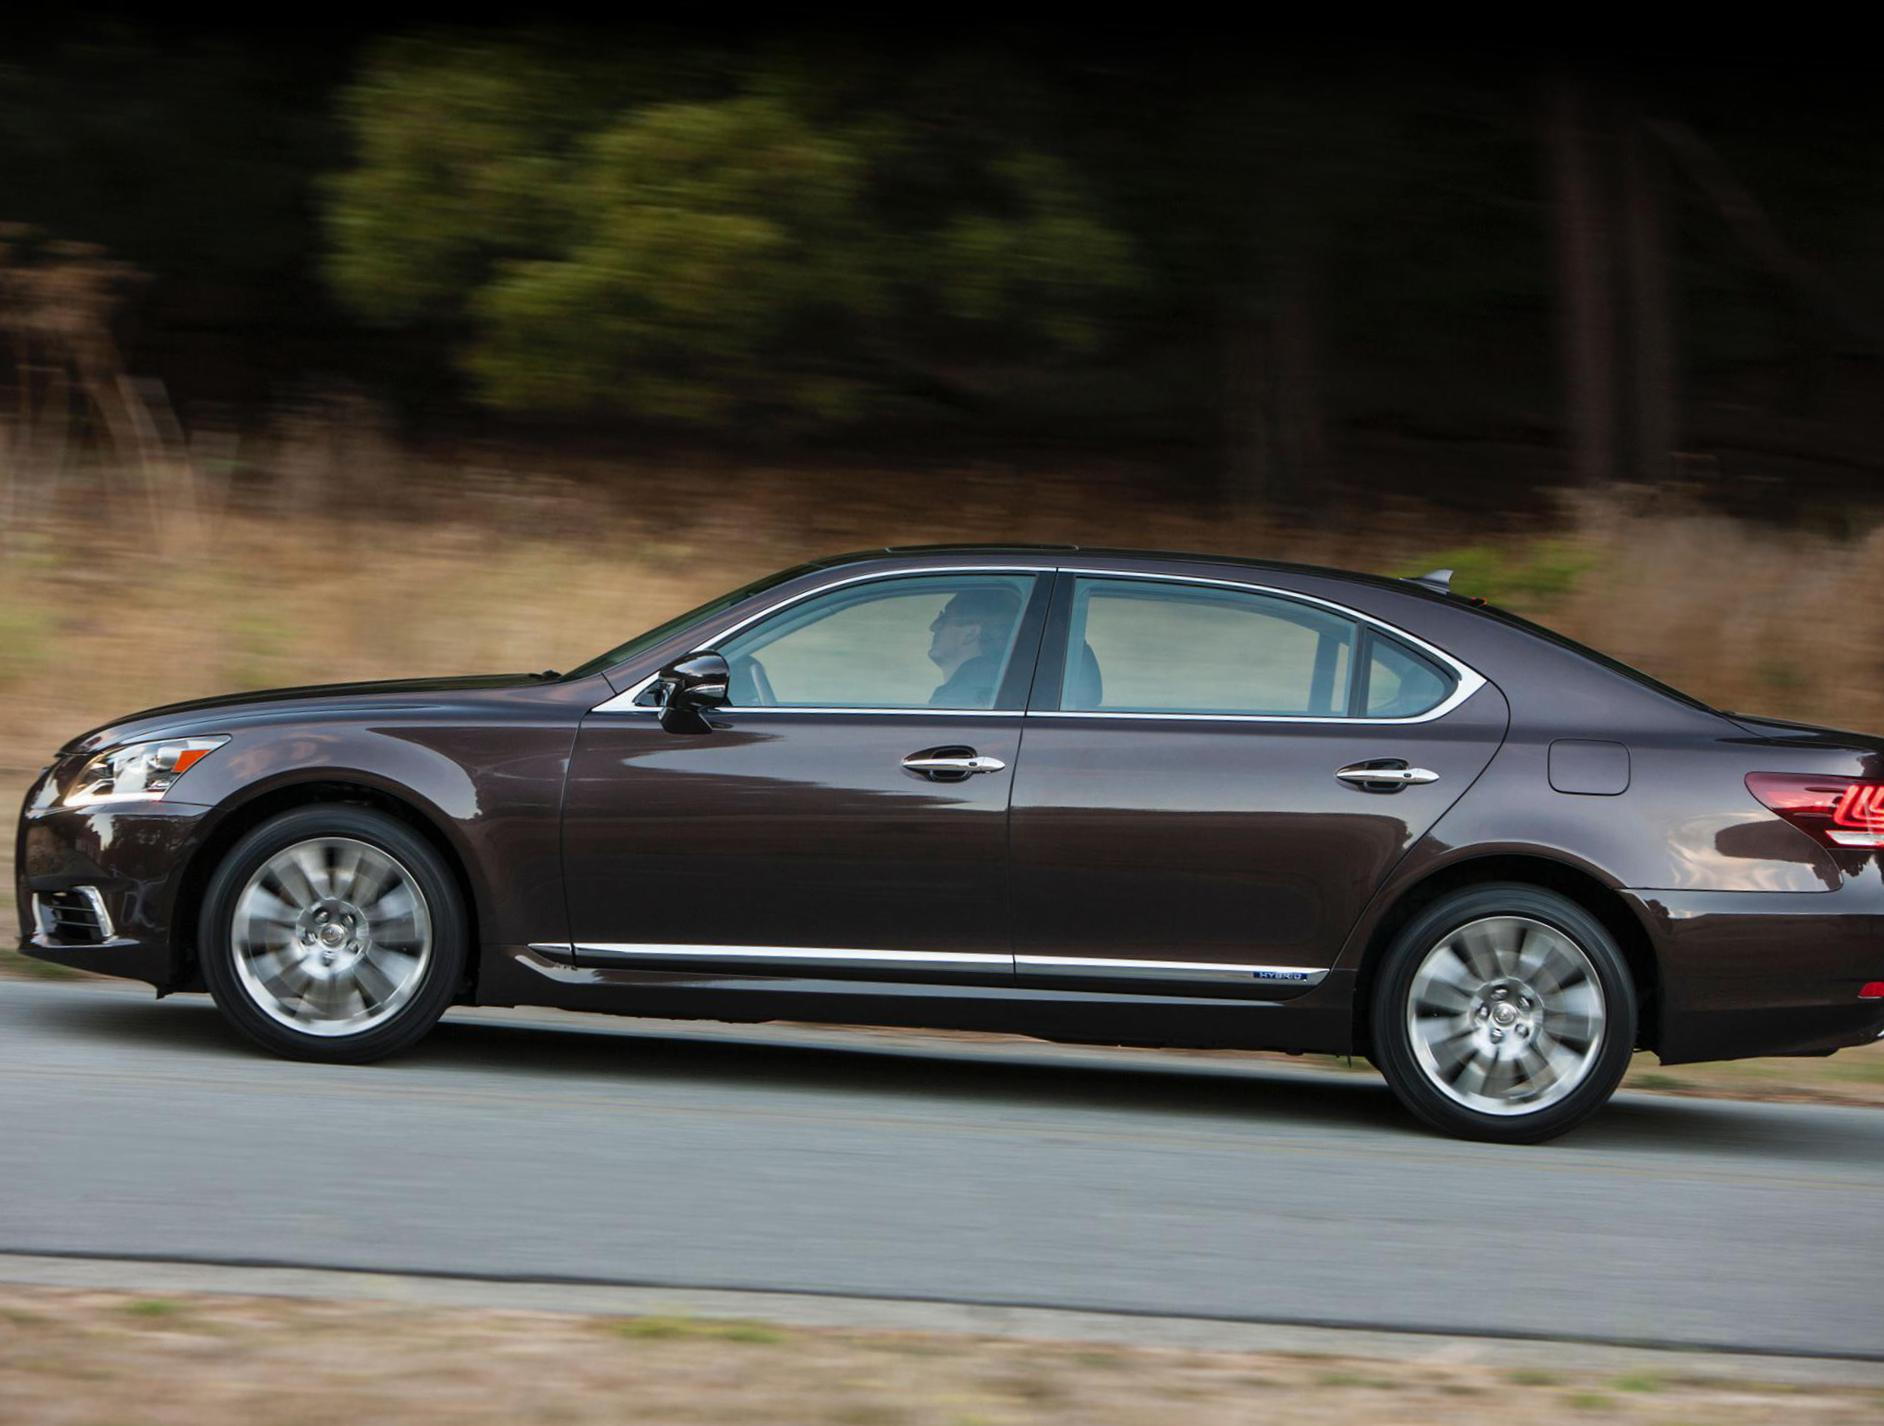 Lexus LS 600h Photos and Specs. Photo: LS 600h Lexus prices and 26